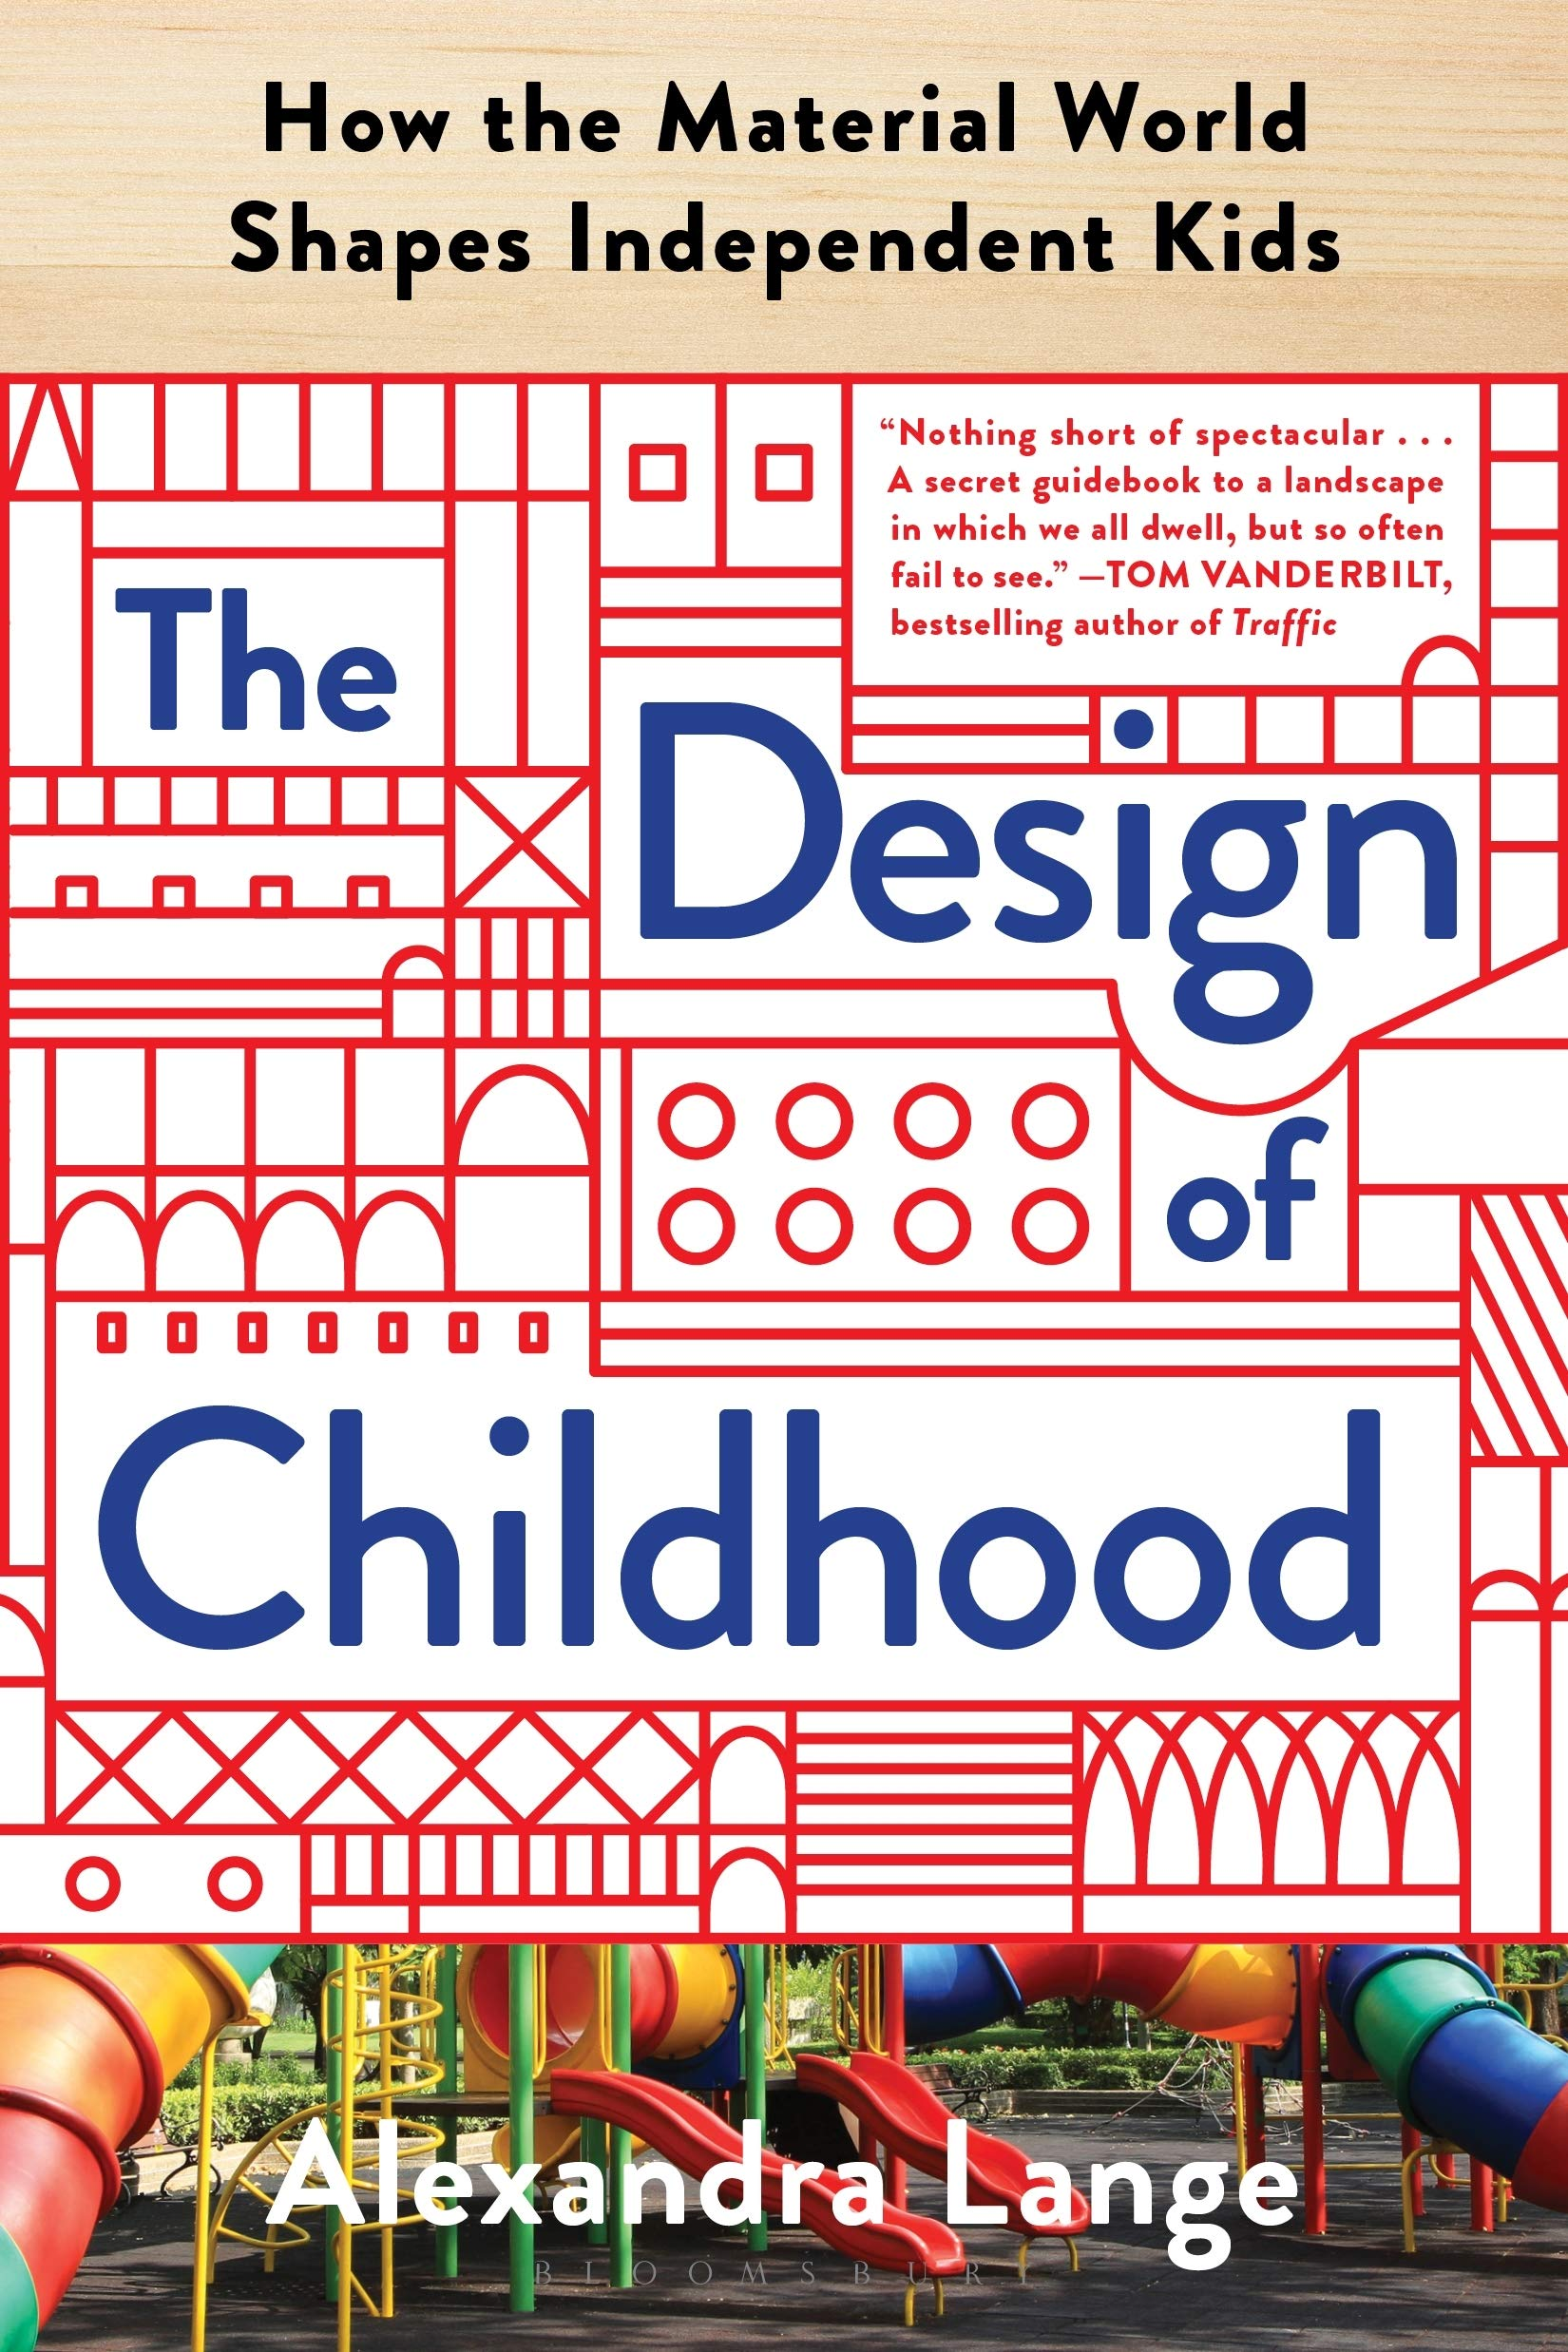 The Design of Childhood: How the Material World Shapes Independent Kids